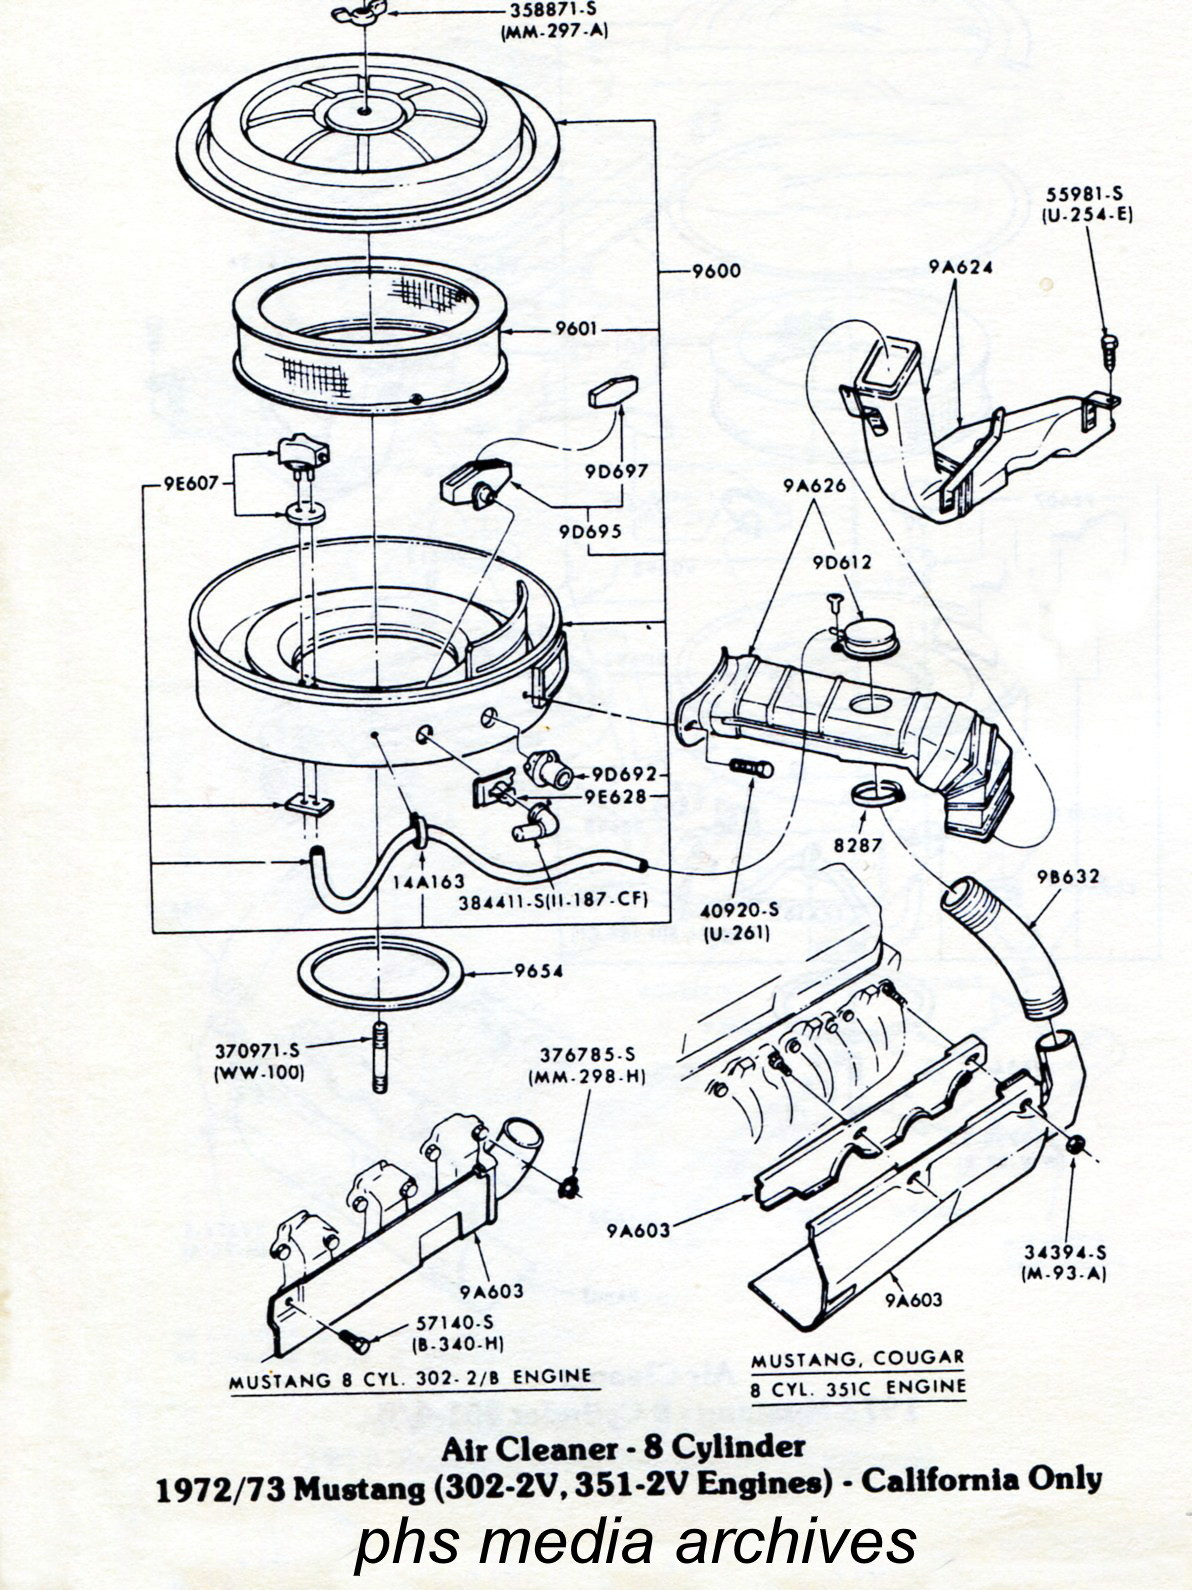 351 v8 engine diagram | wiring library 1967 ford mustang ac heater wiring diagram 73 ford mustang 351 windsor wiring diagram